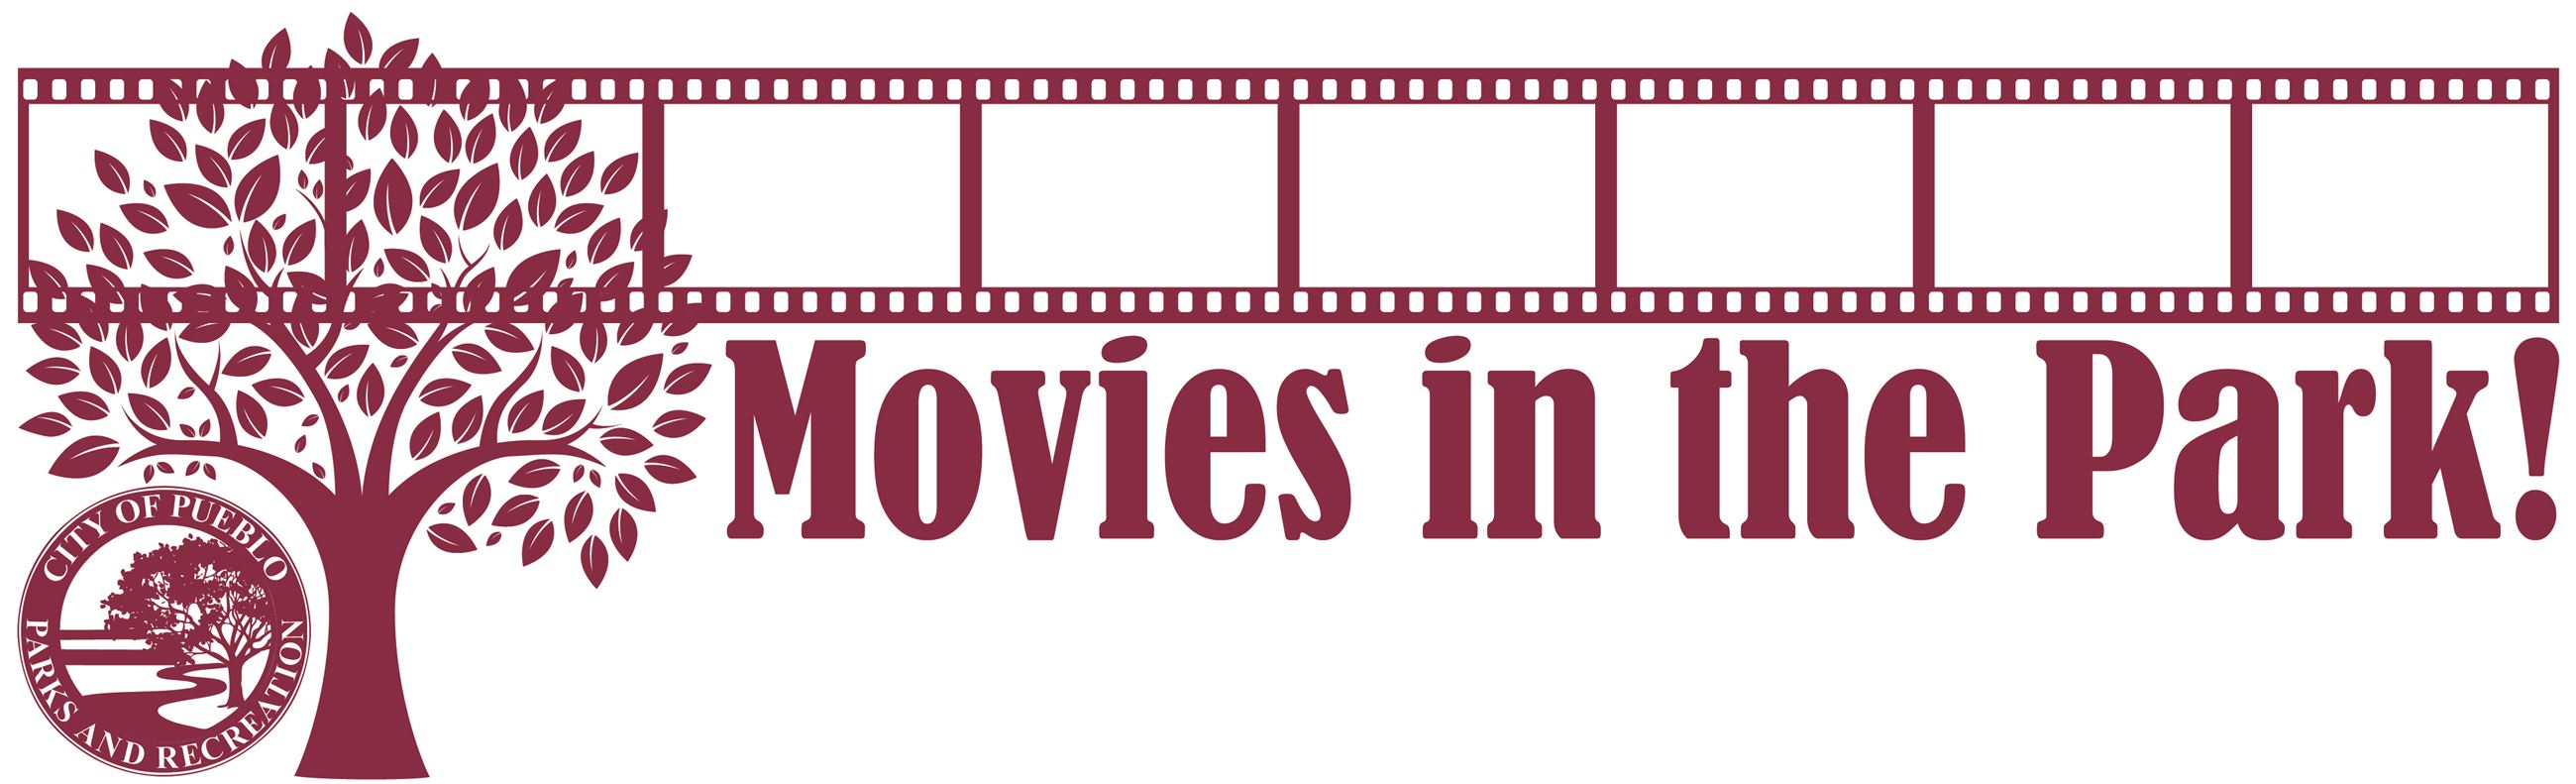 2018_MoviesInThePark_LOGO_Datenight